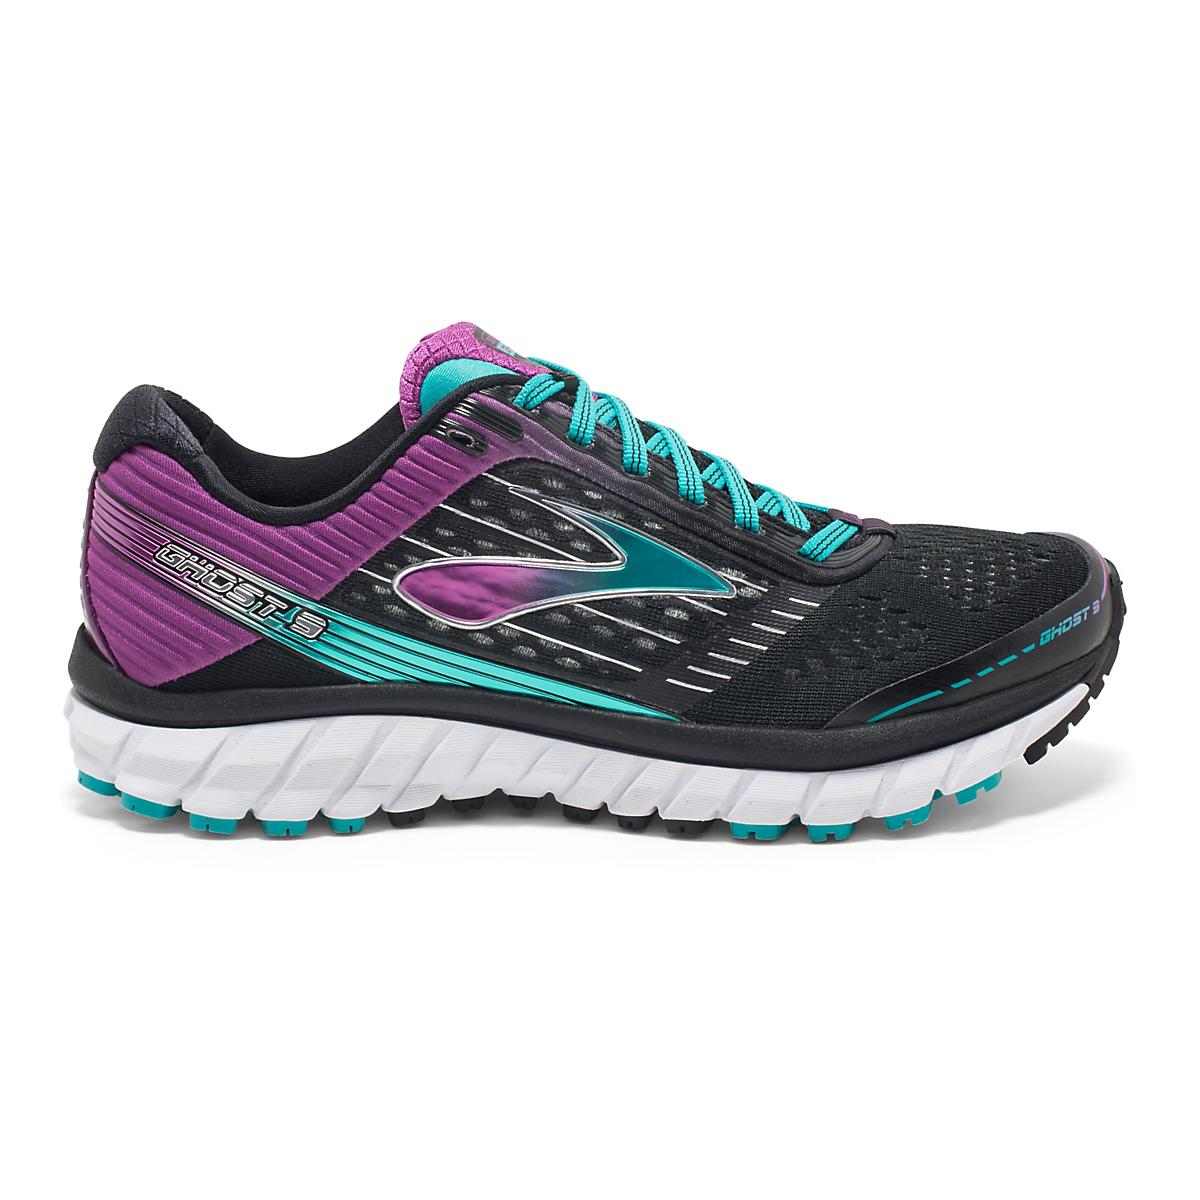 fcecc99102ab5 Womens Brooks Ghost 9 Running Shoe at Road Runner Sports